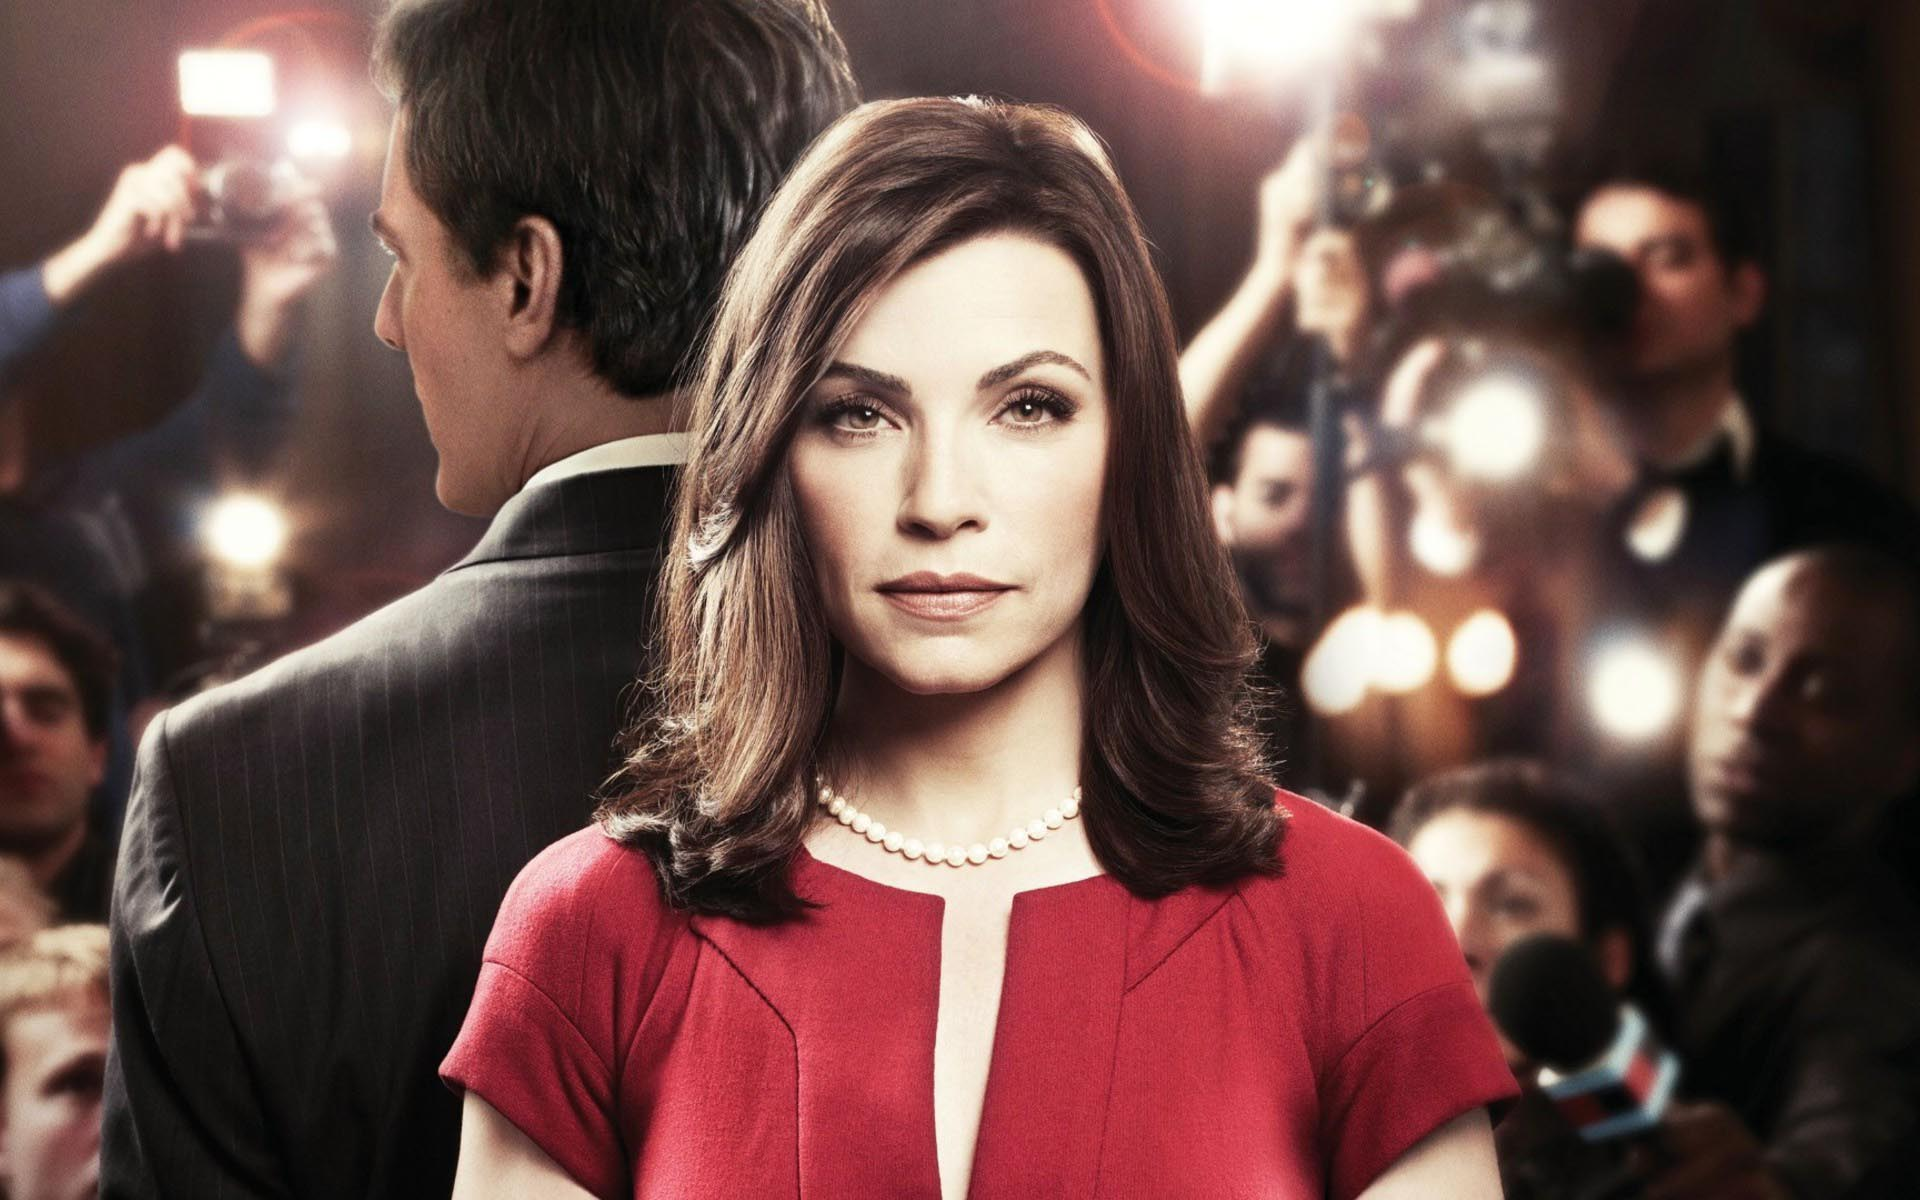 The Good Wife's Julianna Margulies is to make her return to the small screen, having signed on to star in AMC's 'Dietland' from showrunner Marti Noxon.